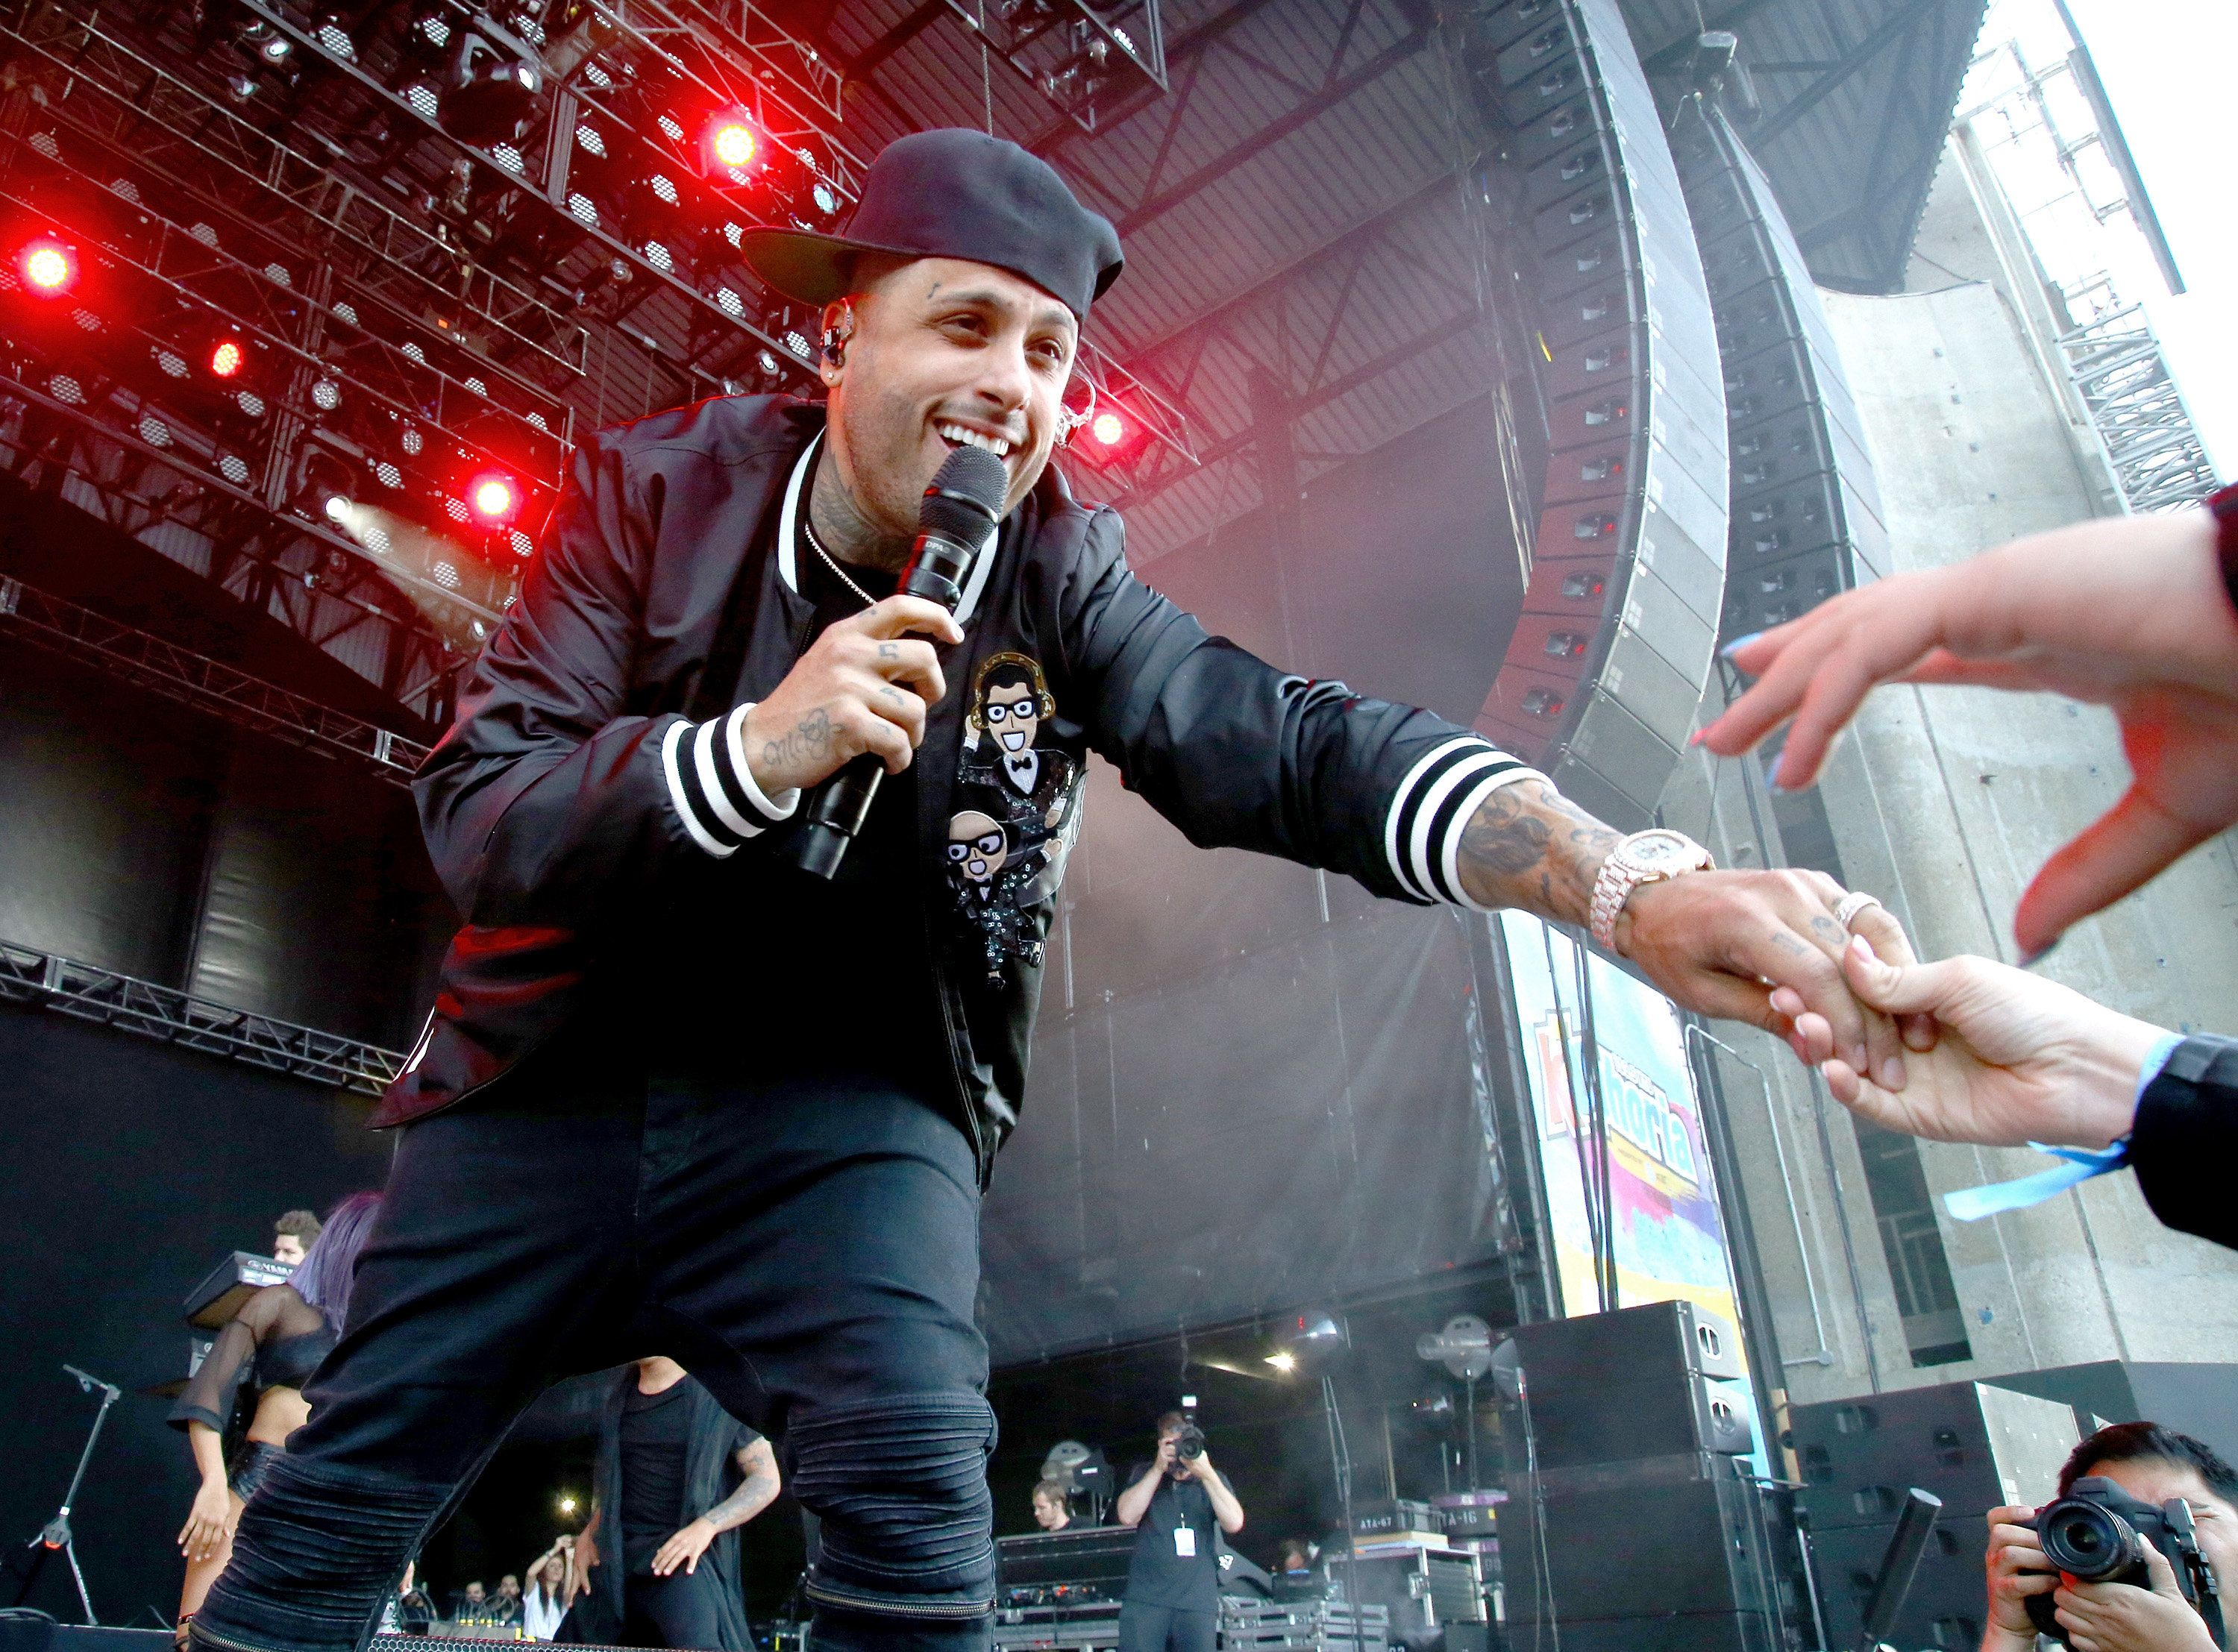 Nicky Jam performs onstage at KTUphoria 2017.